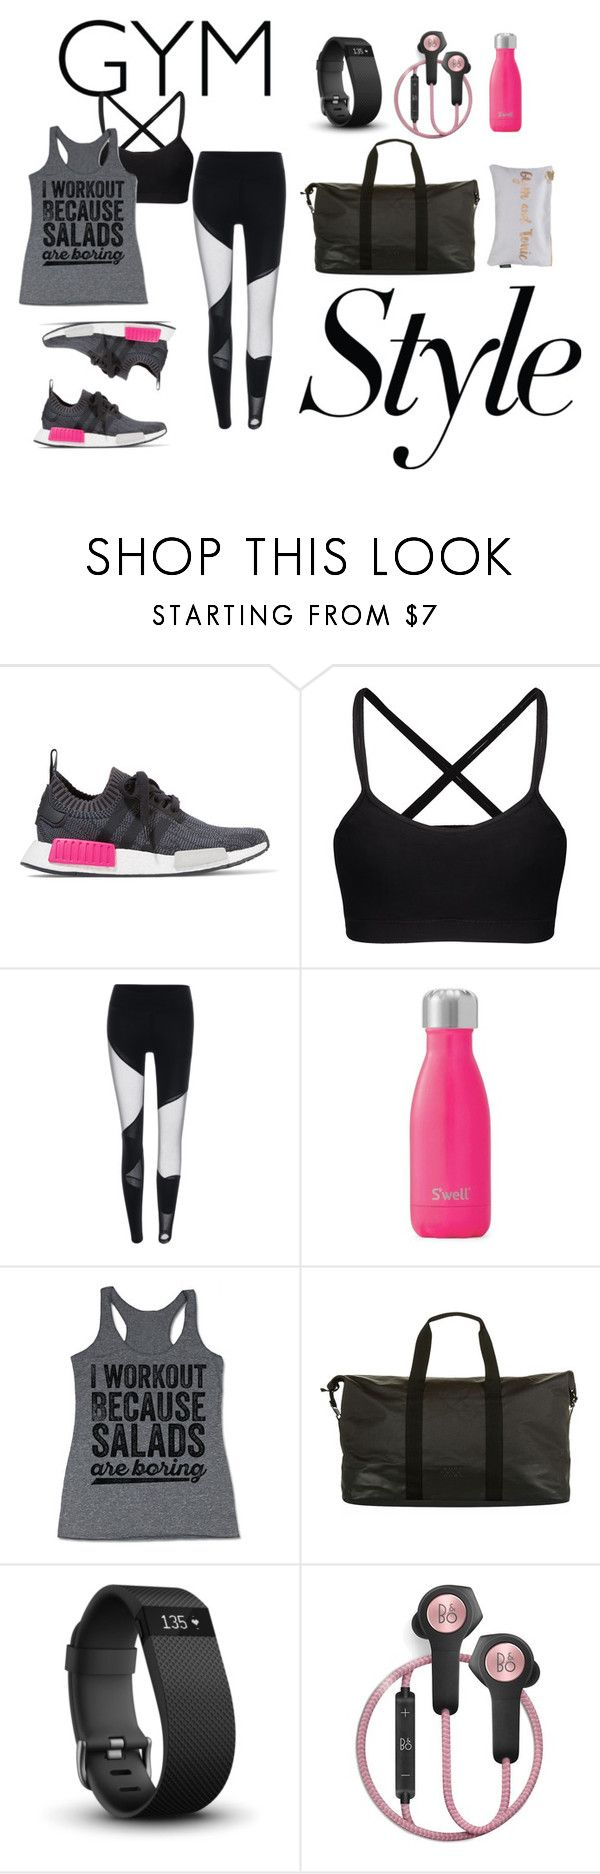 """Bez naslova #114"" by avipavi ❤ liked on Polyvore featuring adidas Originals, Swell, adidas, Fitbit, B&O Play, Nails Inc., workout, Runner, gymstyle and gymessentials"